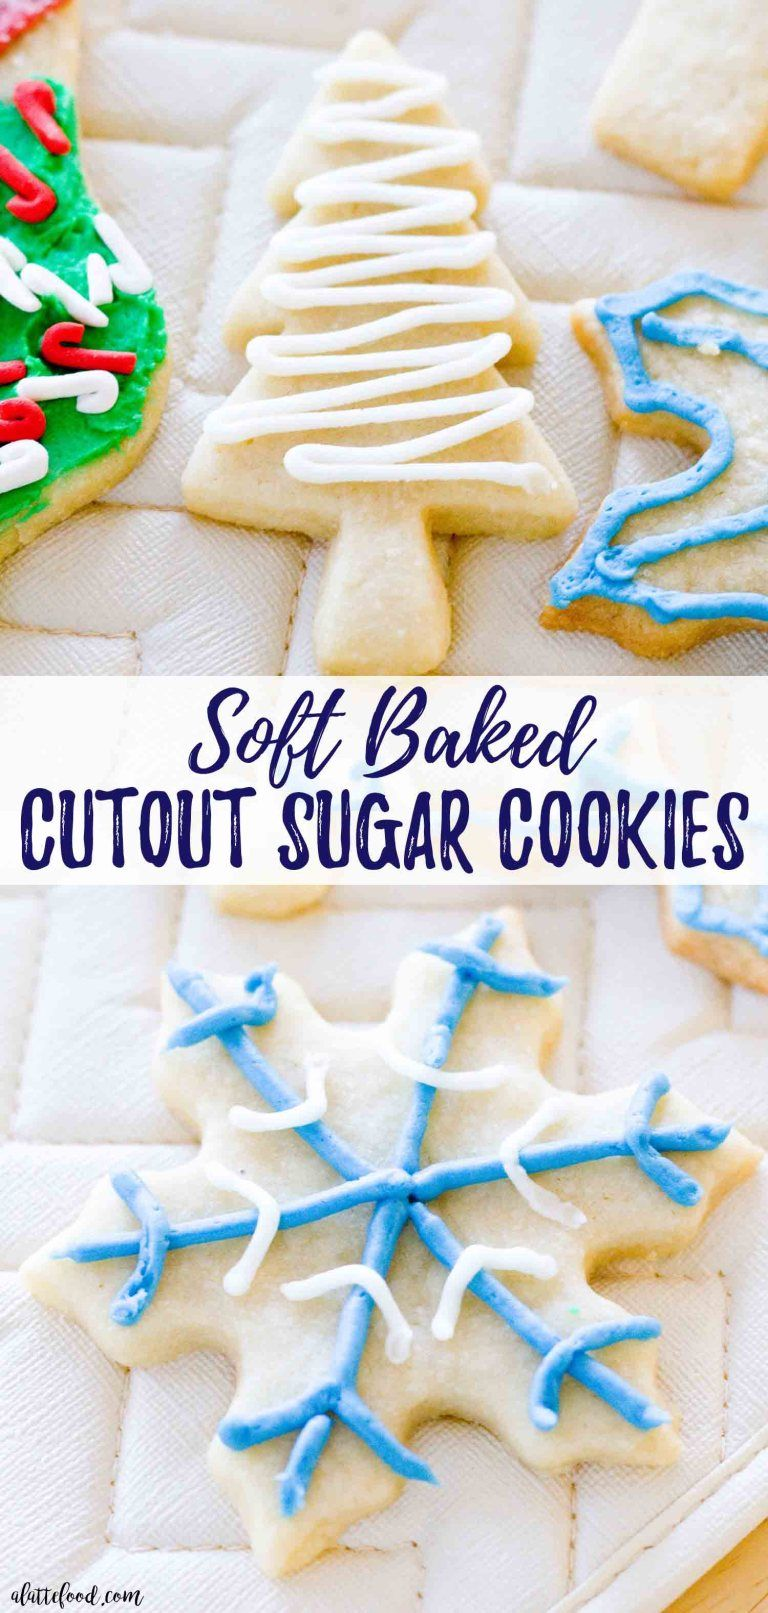 Soft-Baked Cutout Sugar Cookies: These soft rollout sugar cookies have Christmas and New Years written all over them! It's the perfect Christmas cookie recipe, if you ask me. These Cutout Sugar Cookies are made with homemade frosting and are such a simple classic christmas cookie recipe. #dessert #christmas #cookies #recipe #sugarcookies